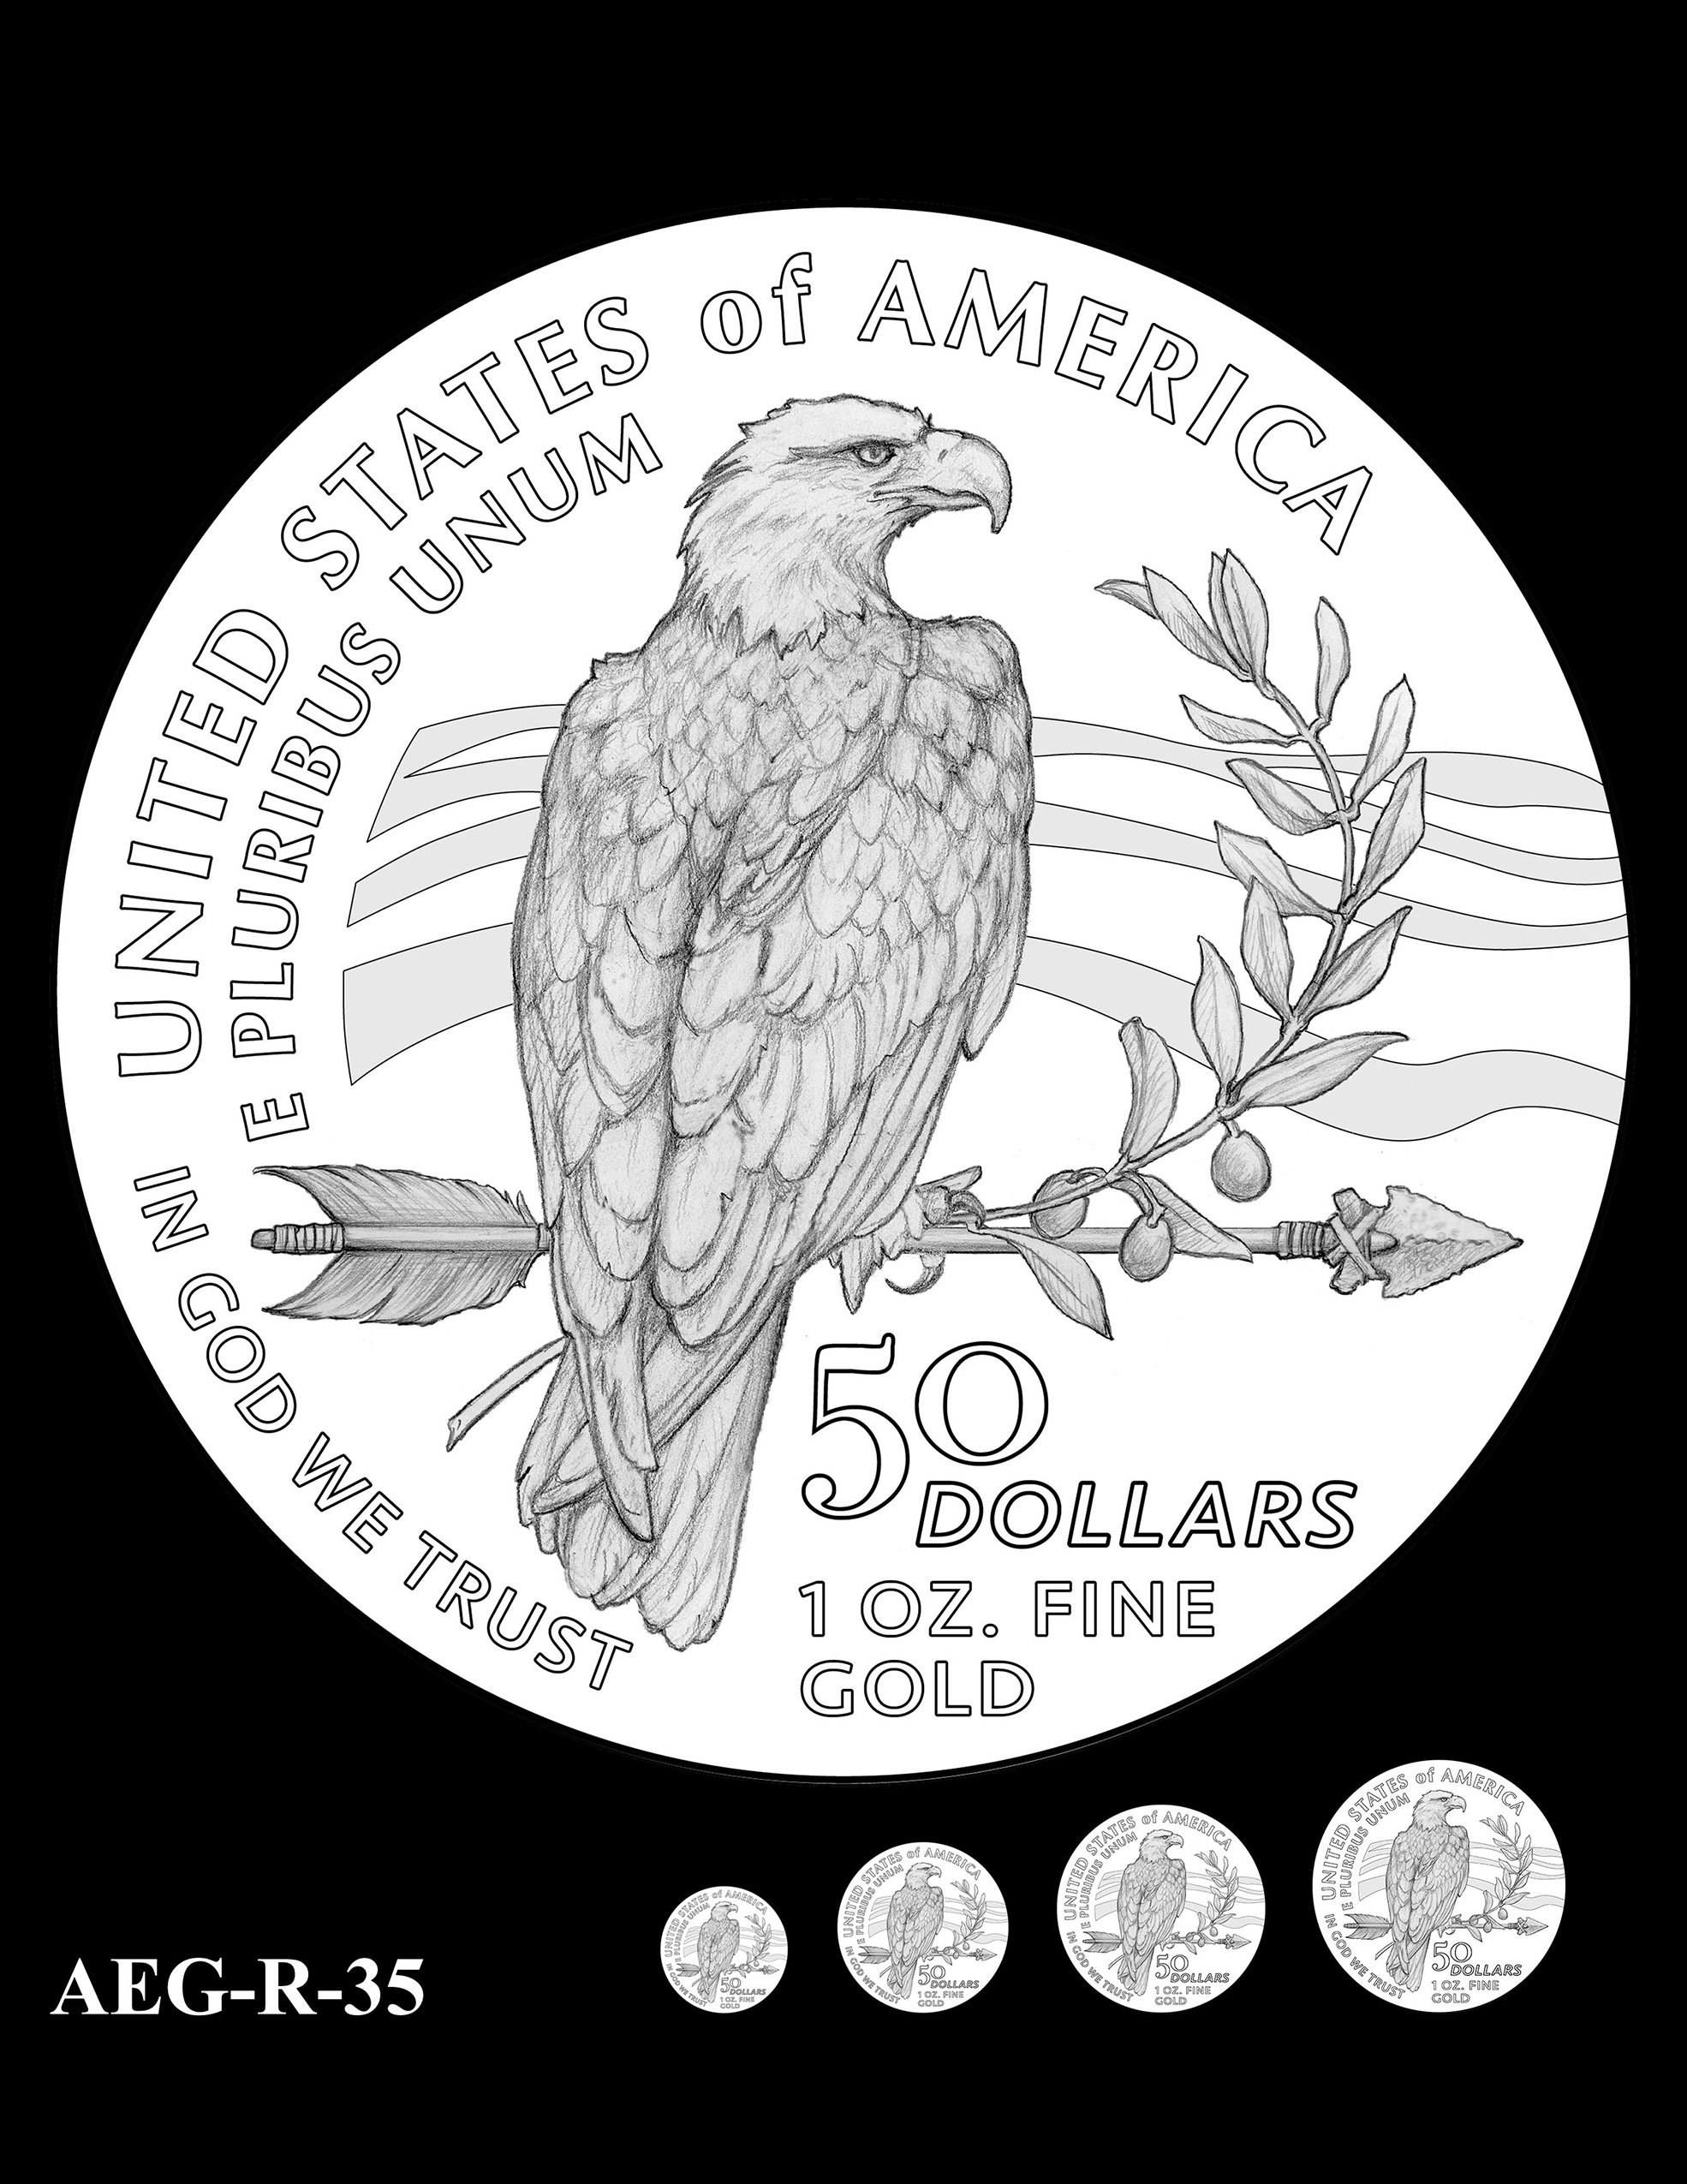 AEG-R-35 -- American Eagle Proof and Bullion Gold Coin - Reverse